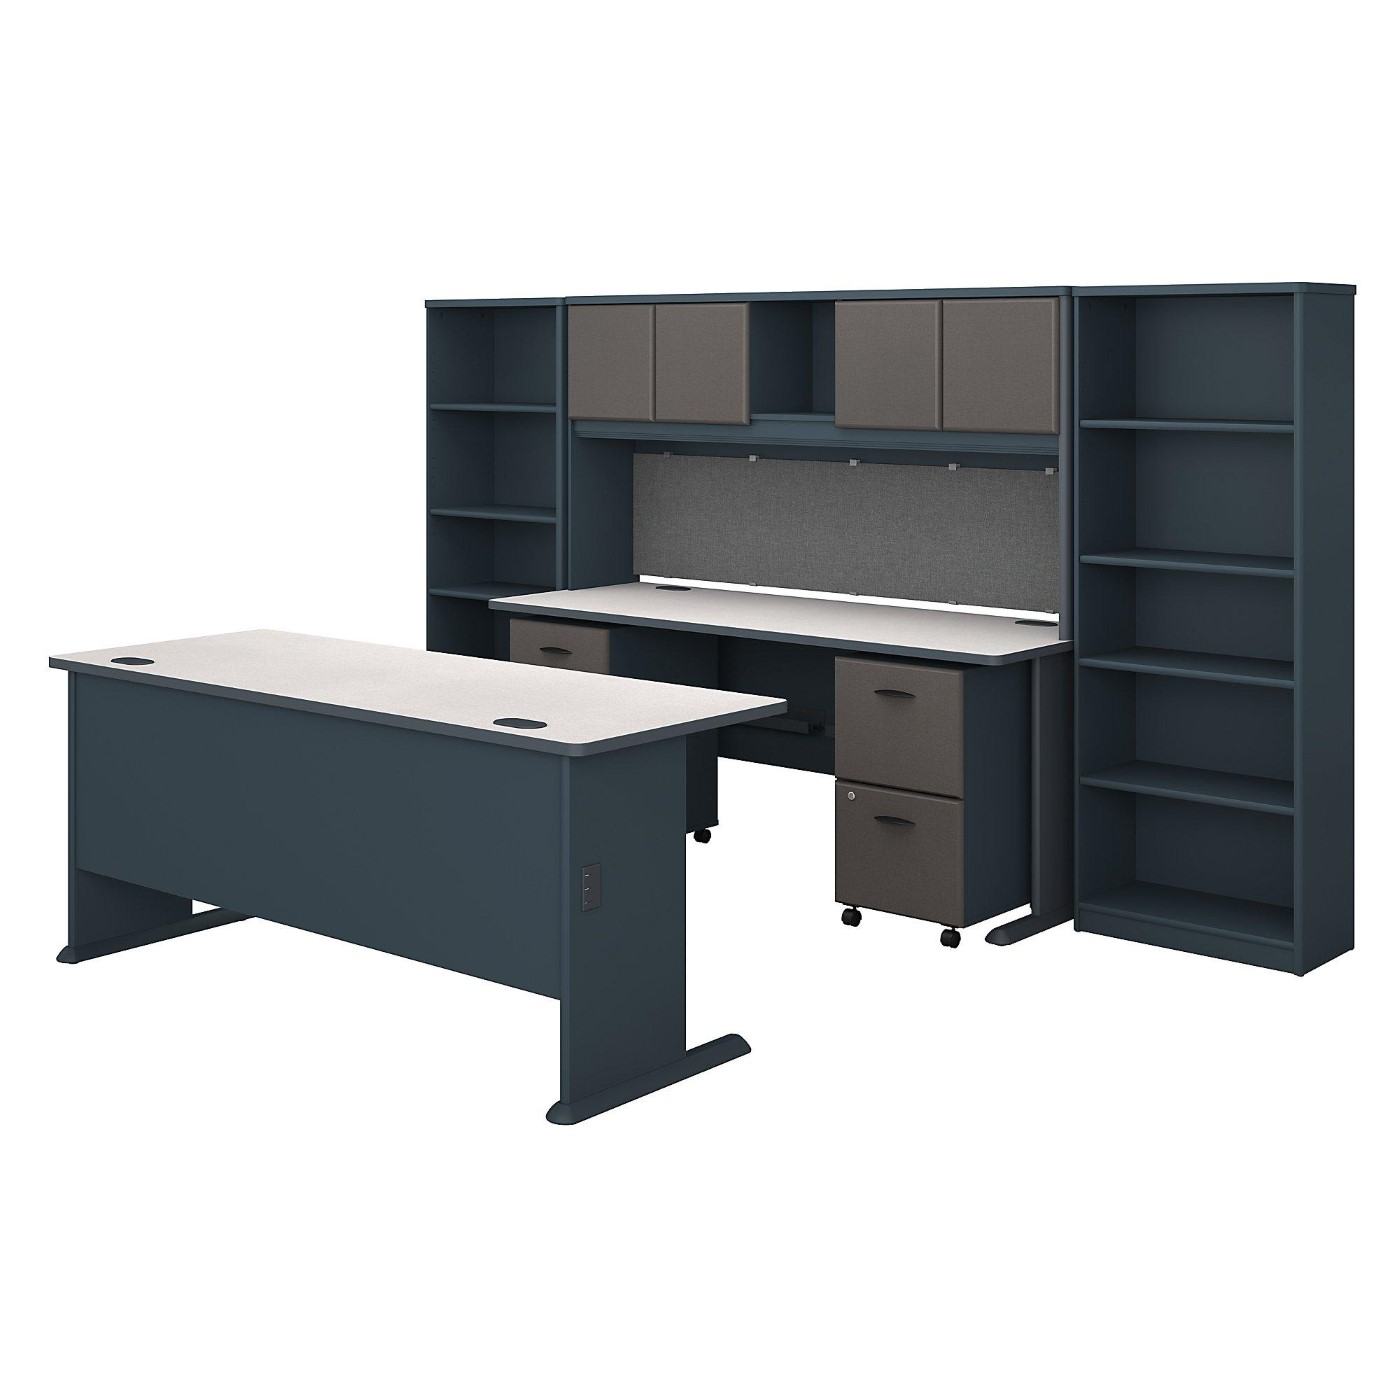 <font color=#c60><b>BUSH BUSINESS FURNITURE SERIES A 72W DESK WITH CREDENZA, HUTCH, BOOKCASES AND STORAGE. FREE SHIPPING</font></b></font></b>